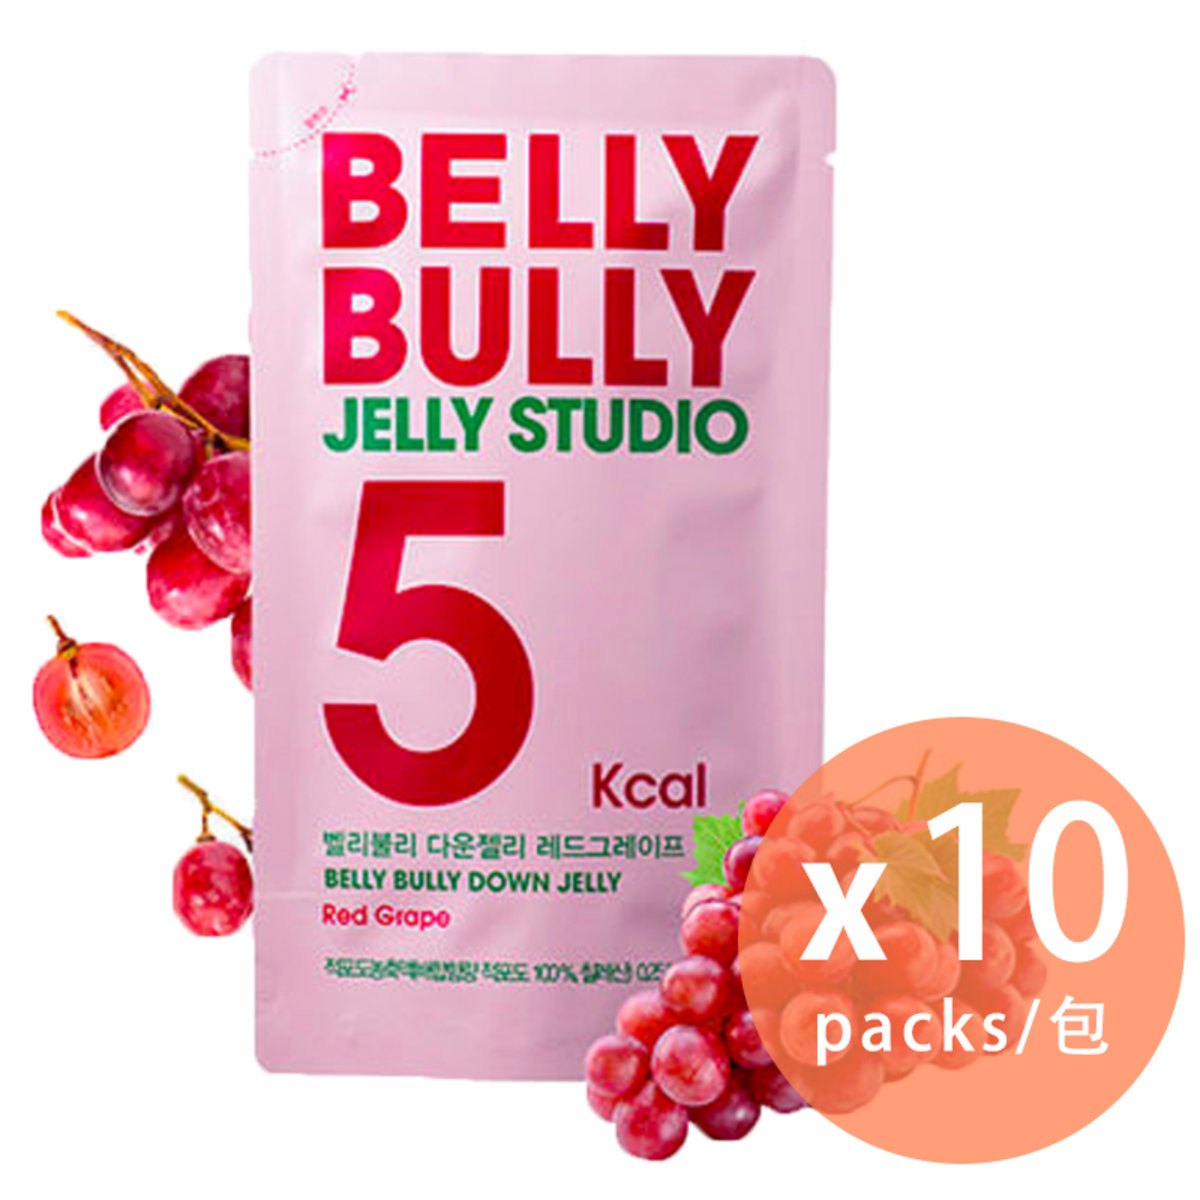 BELLY BULLY Low Slimming Juice Jelly - Red Grape Flavor 150g x 10 packs (8809556561247_10)